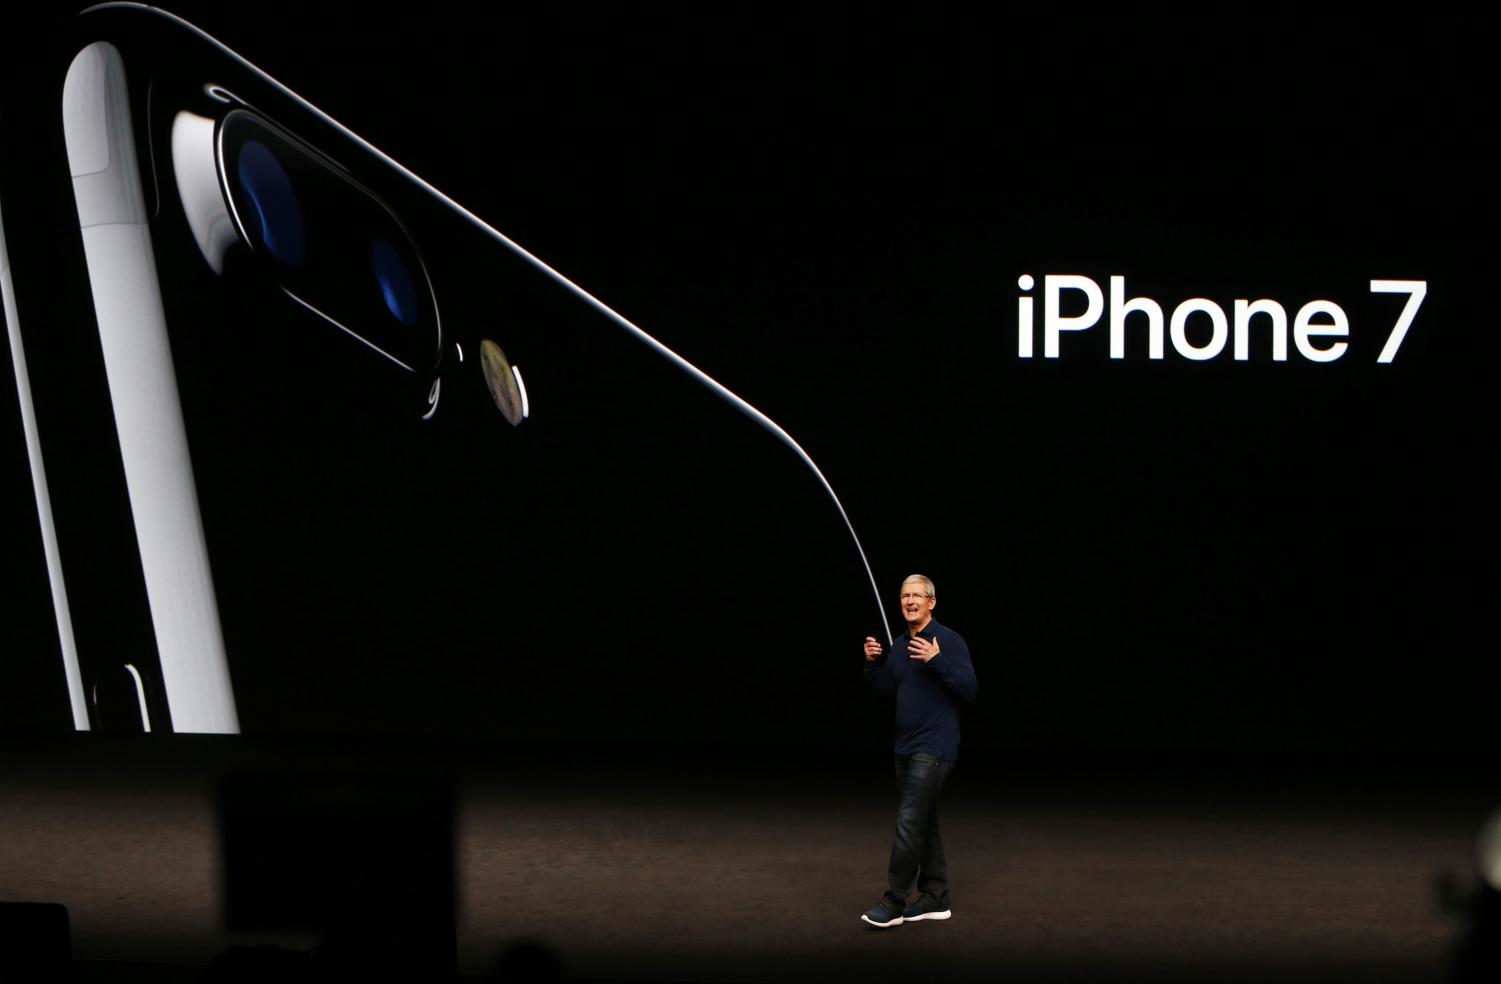 Apple CEO Tim Cook introduces the iPhone 7 at the product launch held at the Bill Graham Civic Auditorium in San Francisco on September 7, 2016. (Gary Reyes/Bay Area News Group/TNS)